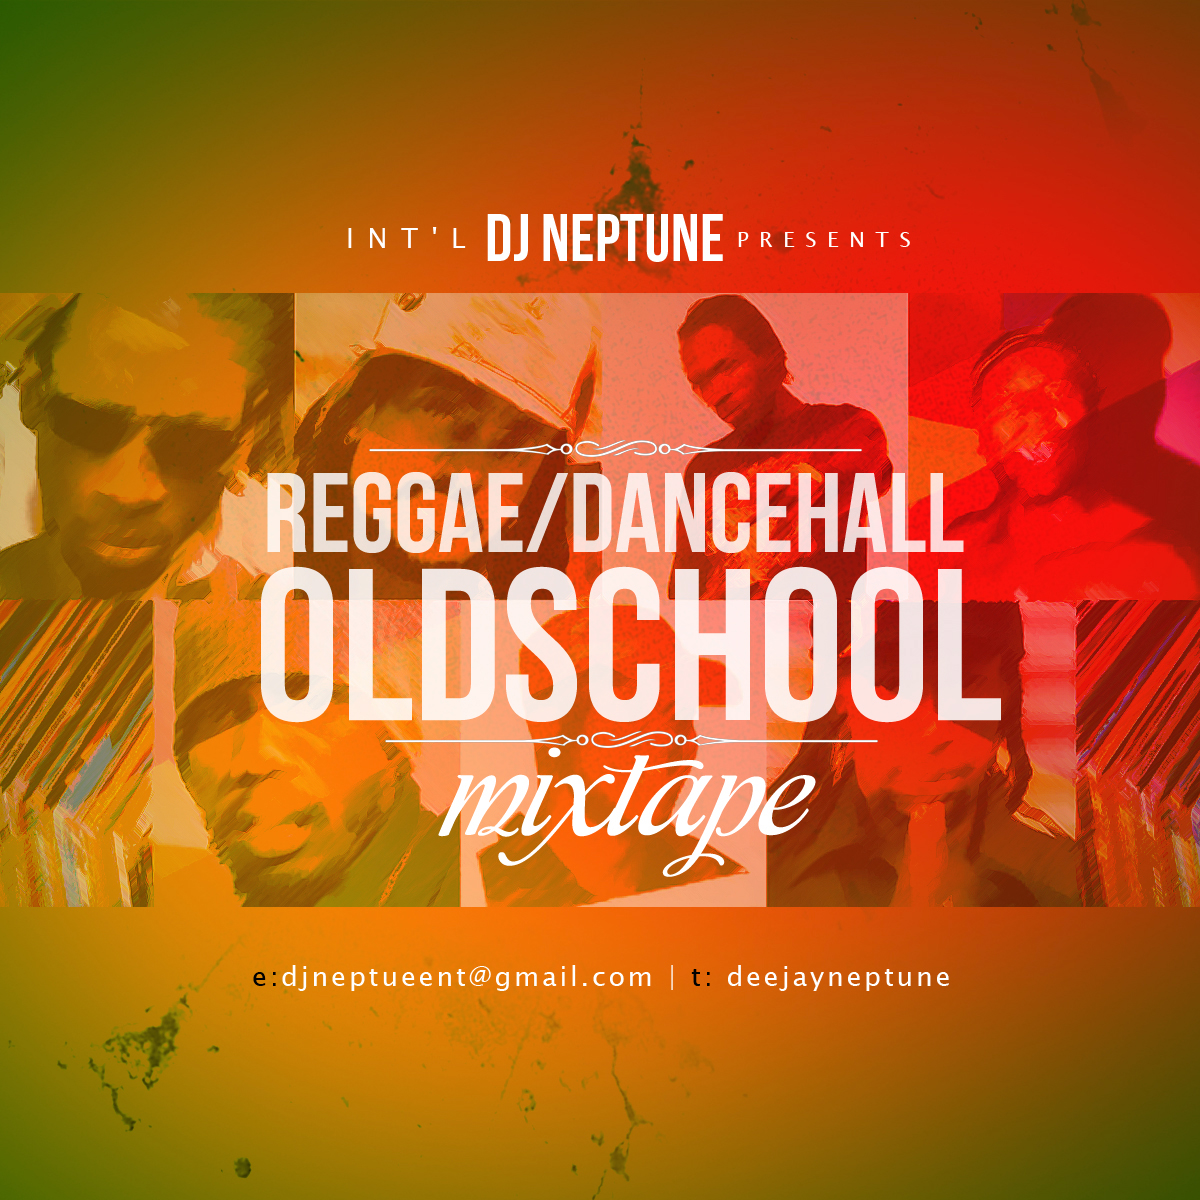 DJ Neptune Presents Reggae/Dancehall Old School Mix [Mixtape